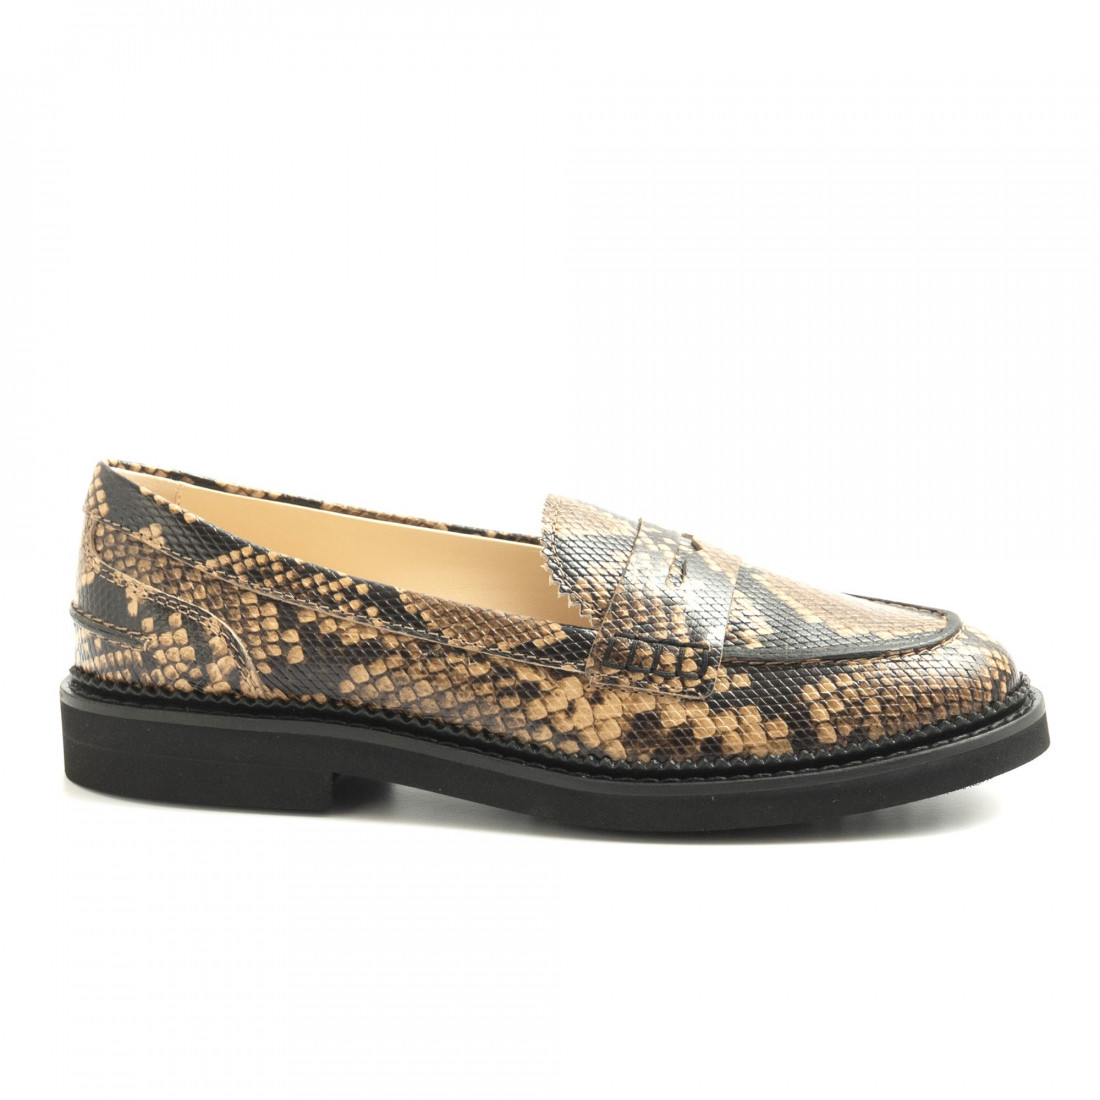 loafers woman tods xxw76b0bp10thyb209 6123